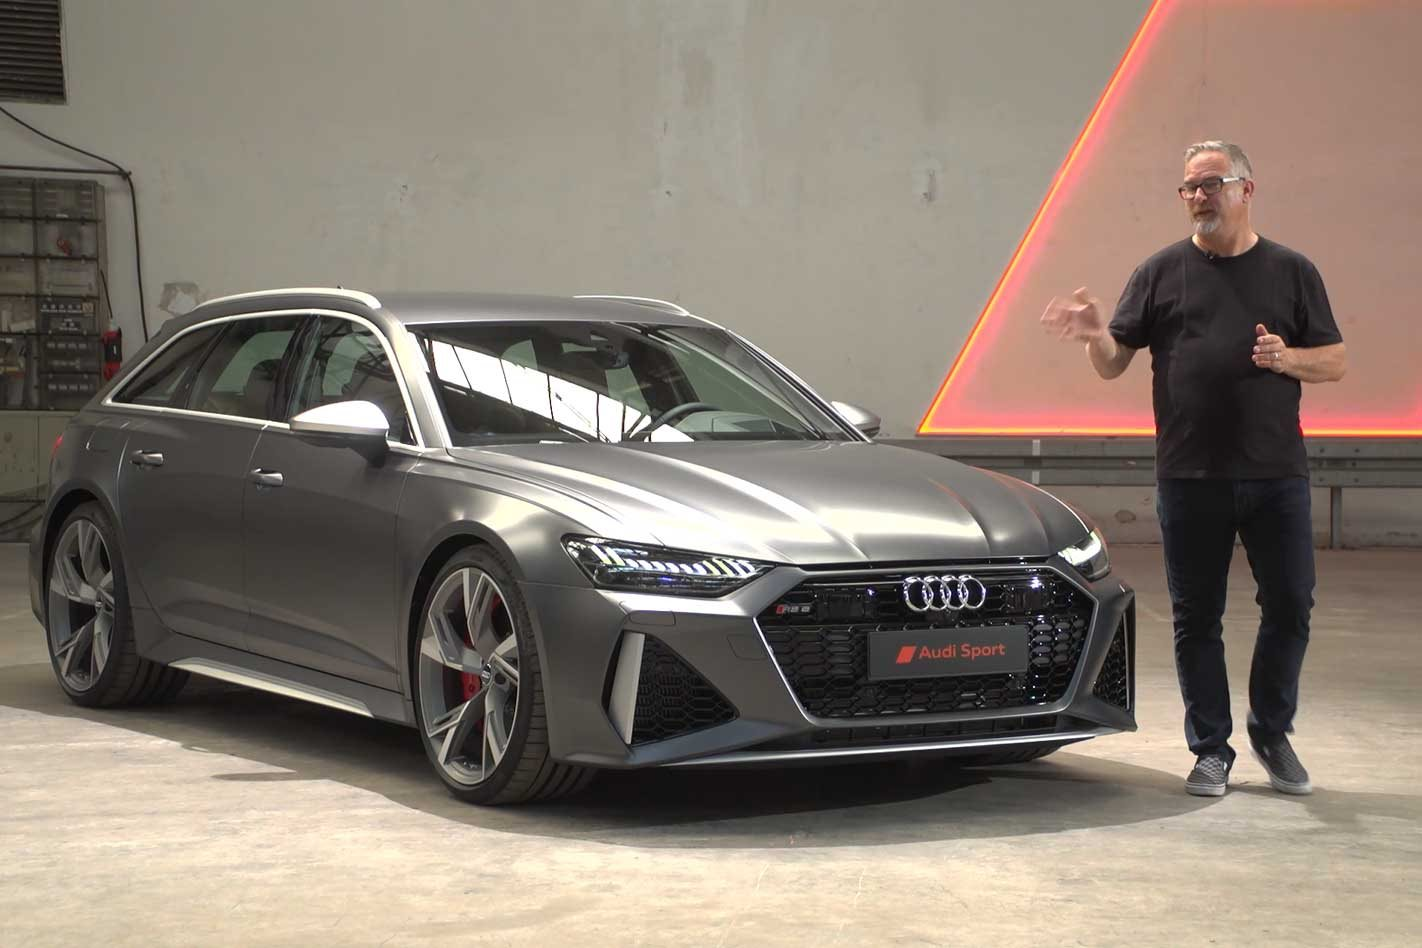 VIDEO: 2020 Audi RS6 Avant insider details revealed